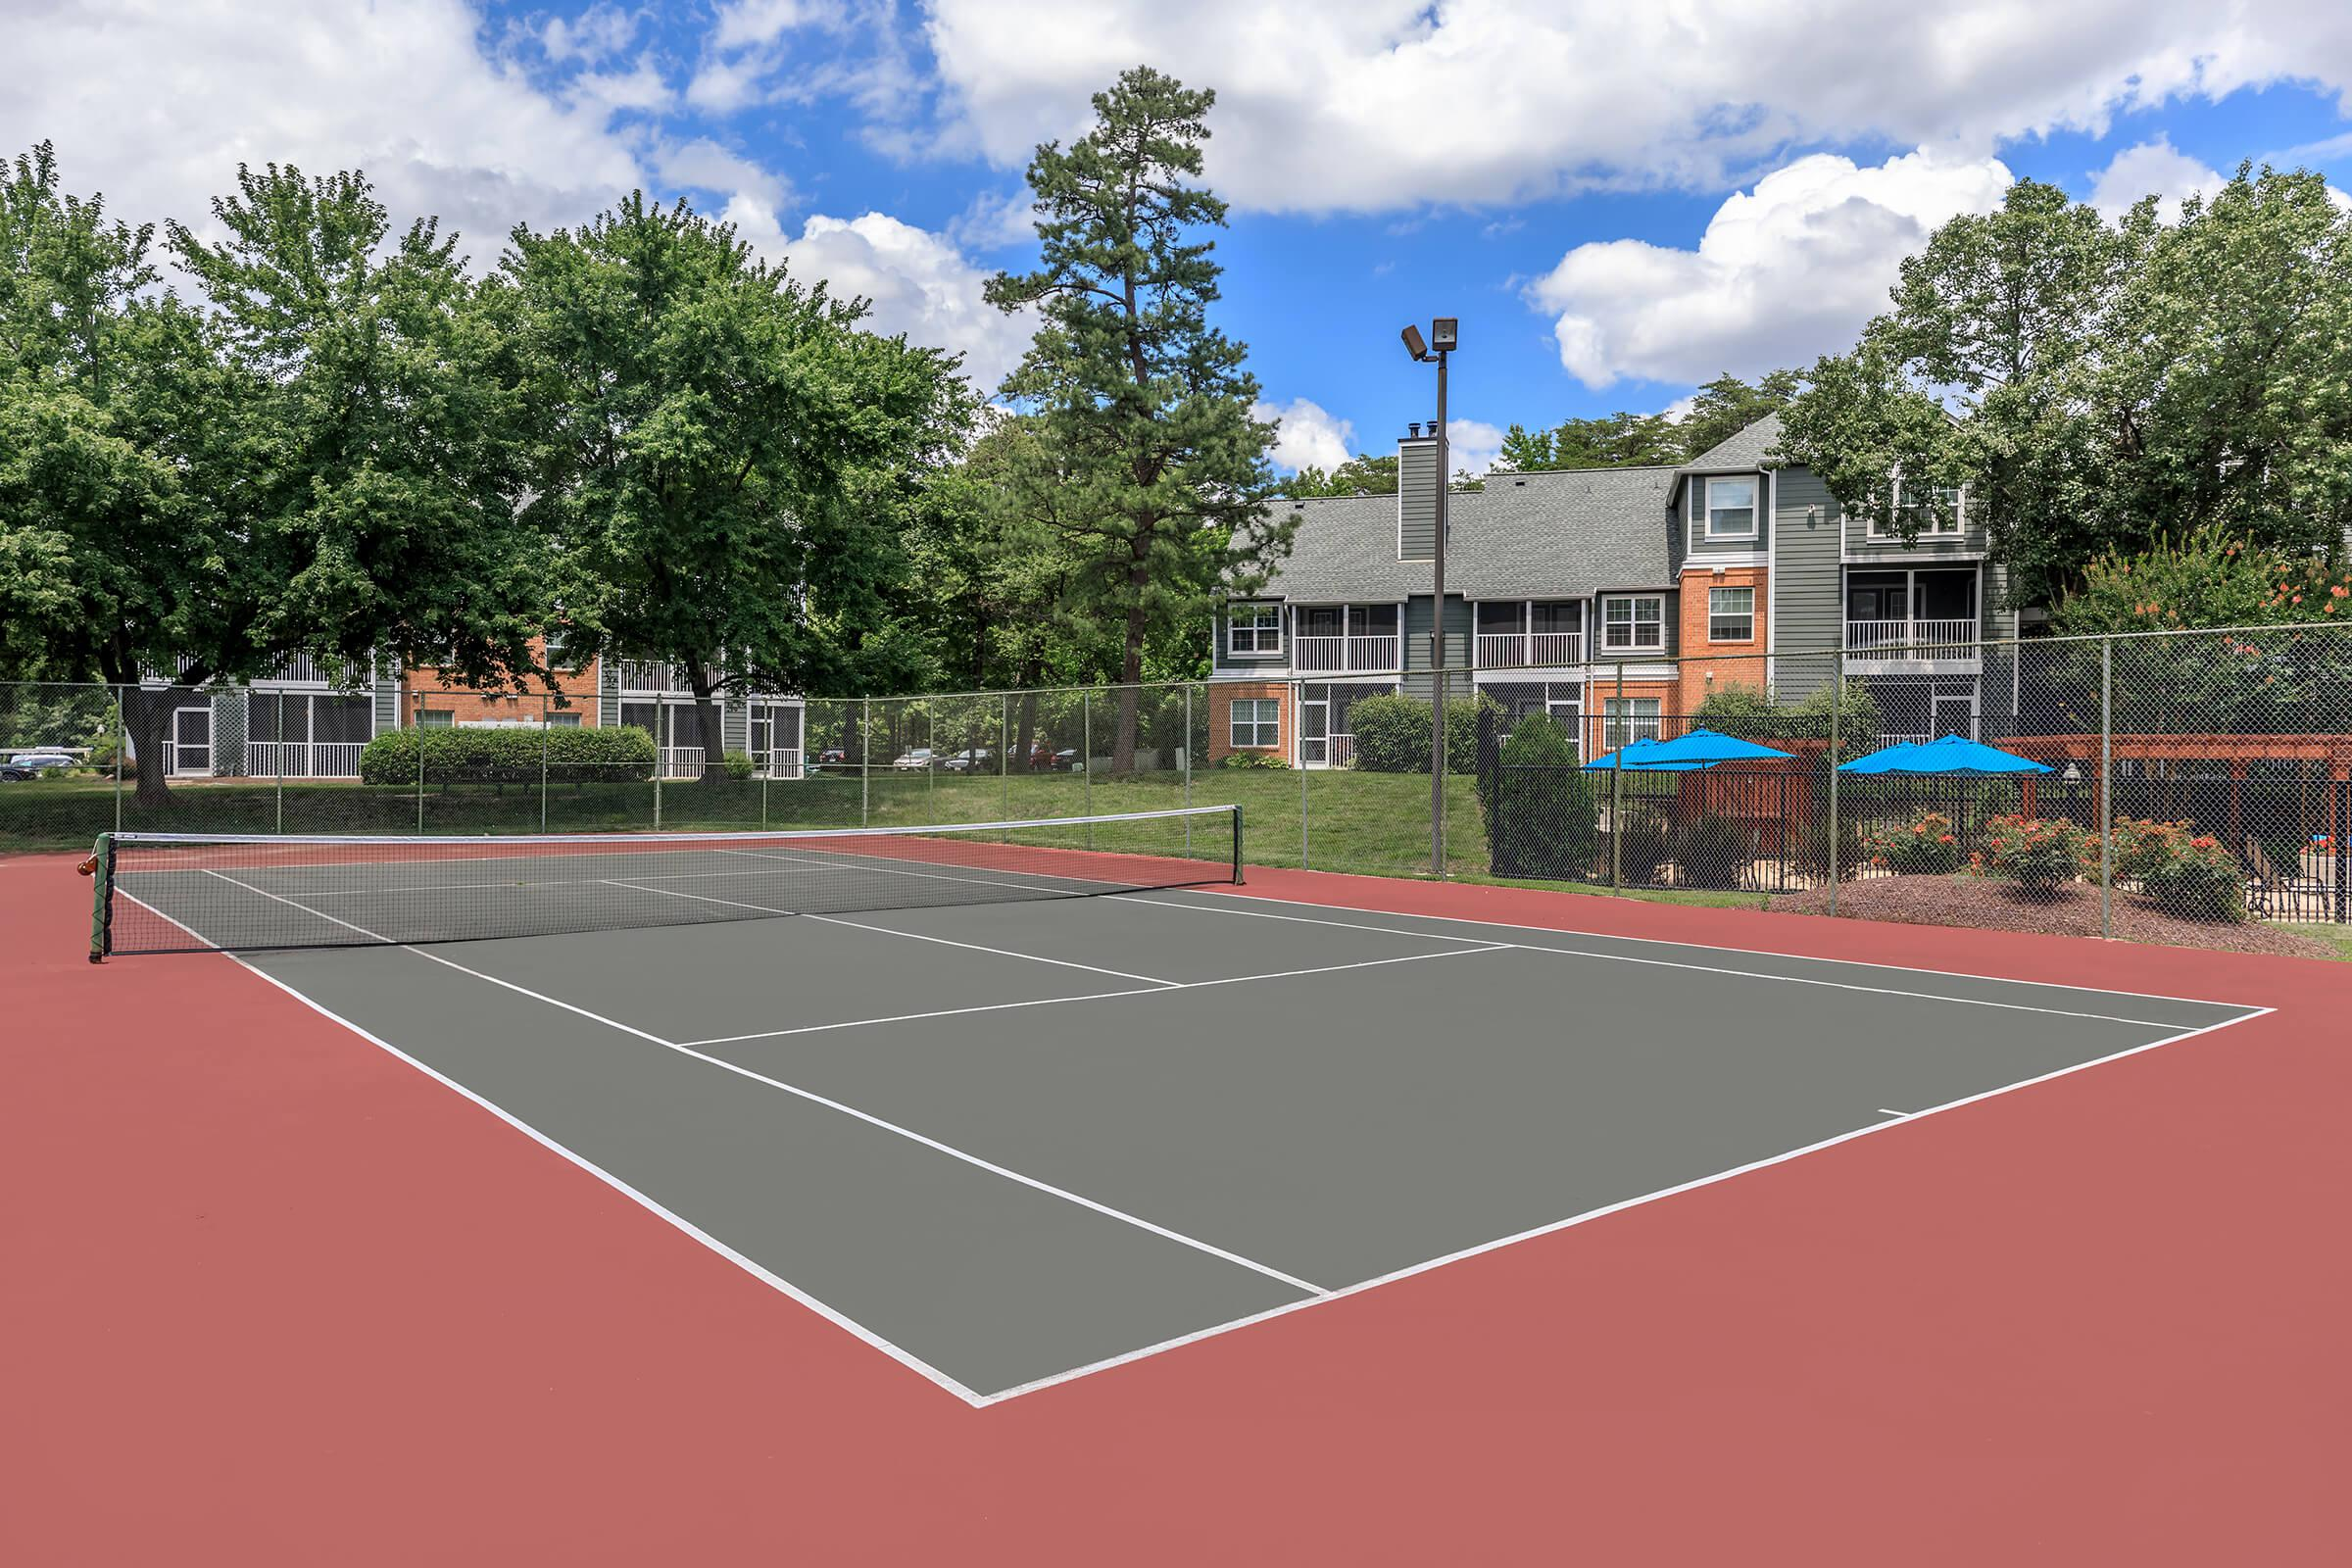 Tennis Court at The Ashberry in Pasadena MD